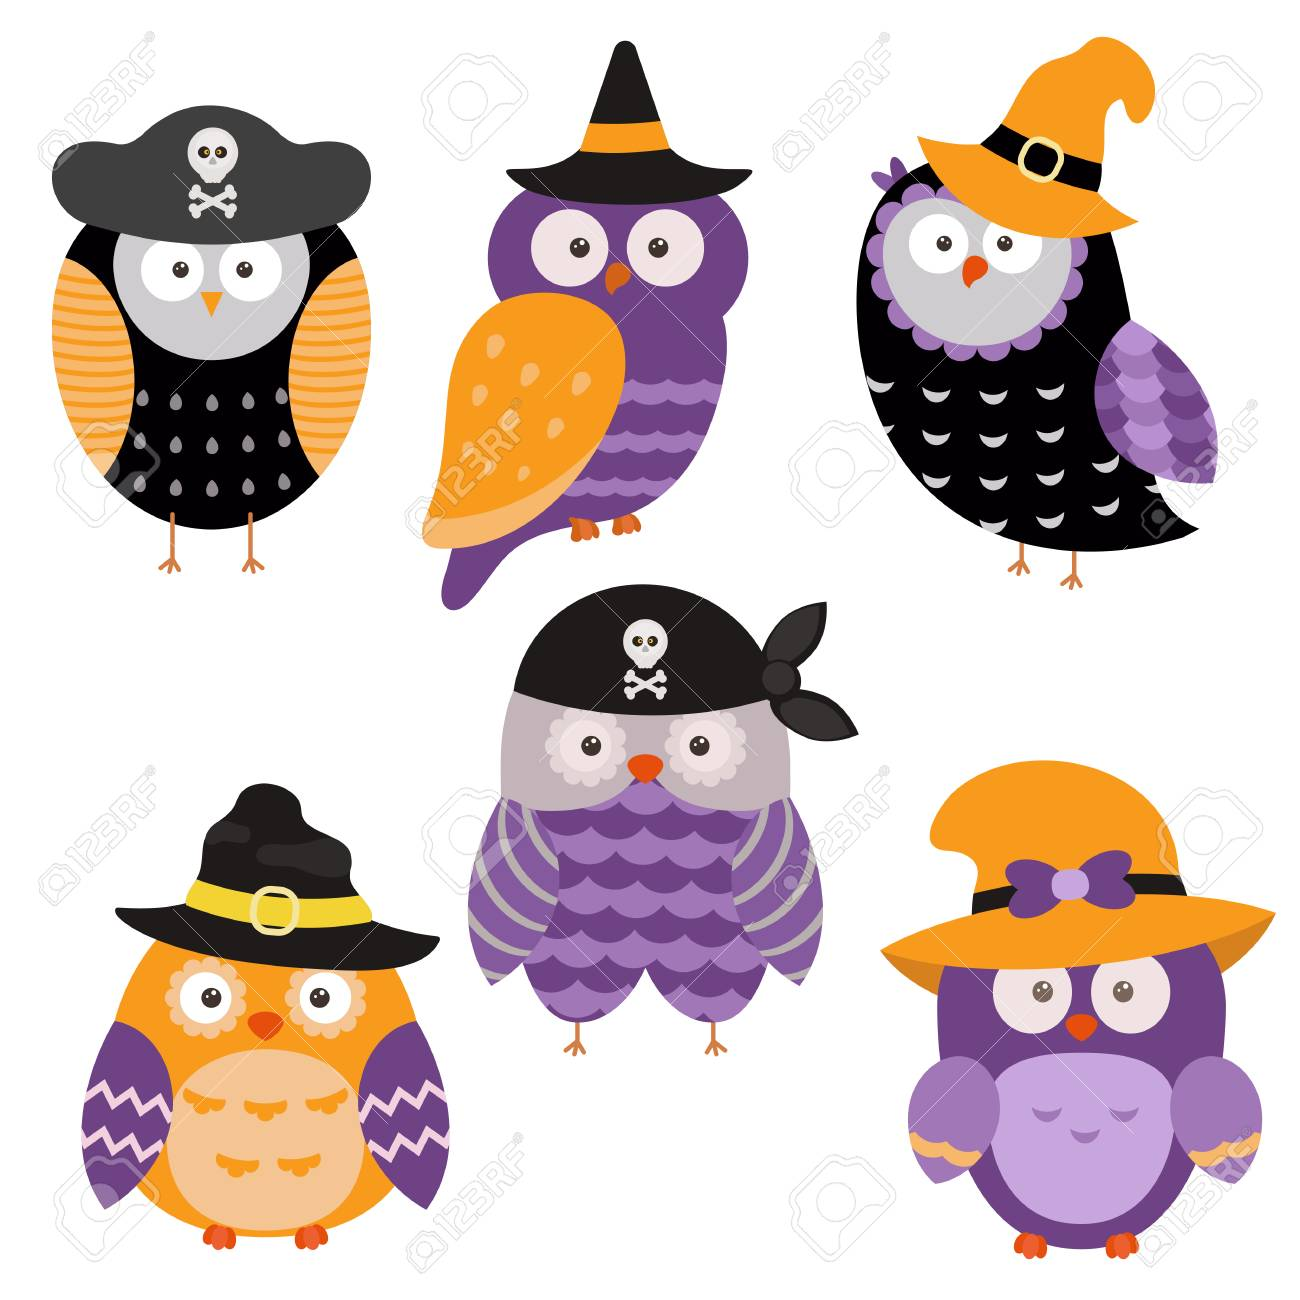 Collection of cute cartoon owls on a white background. Happy..